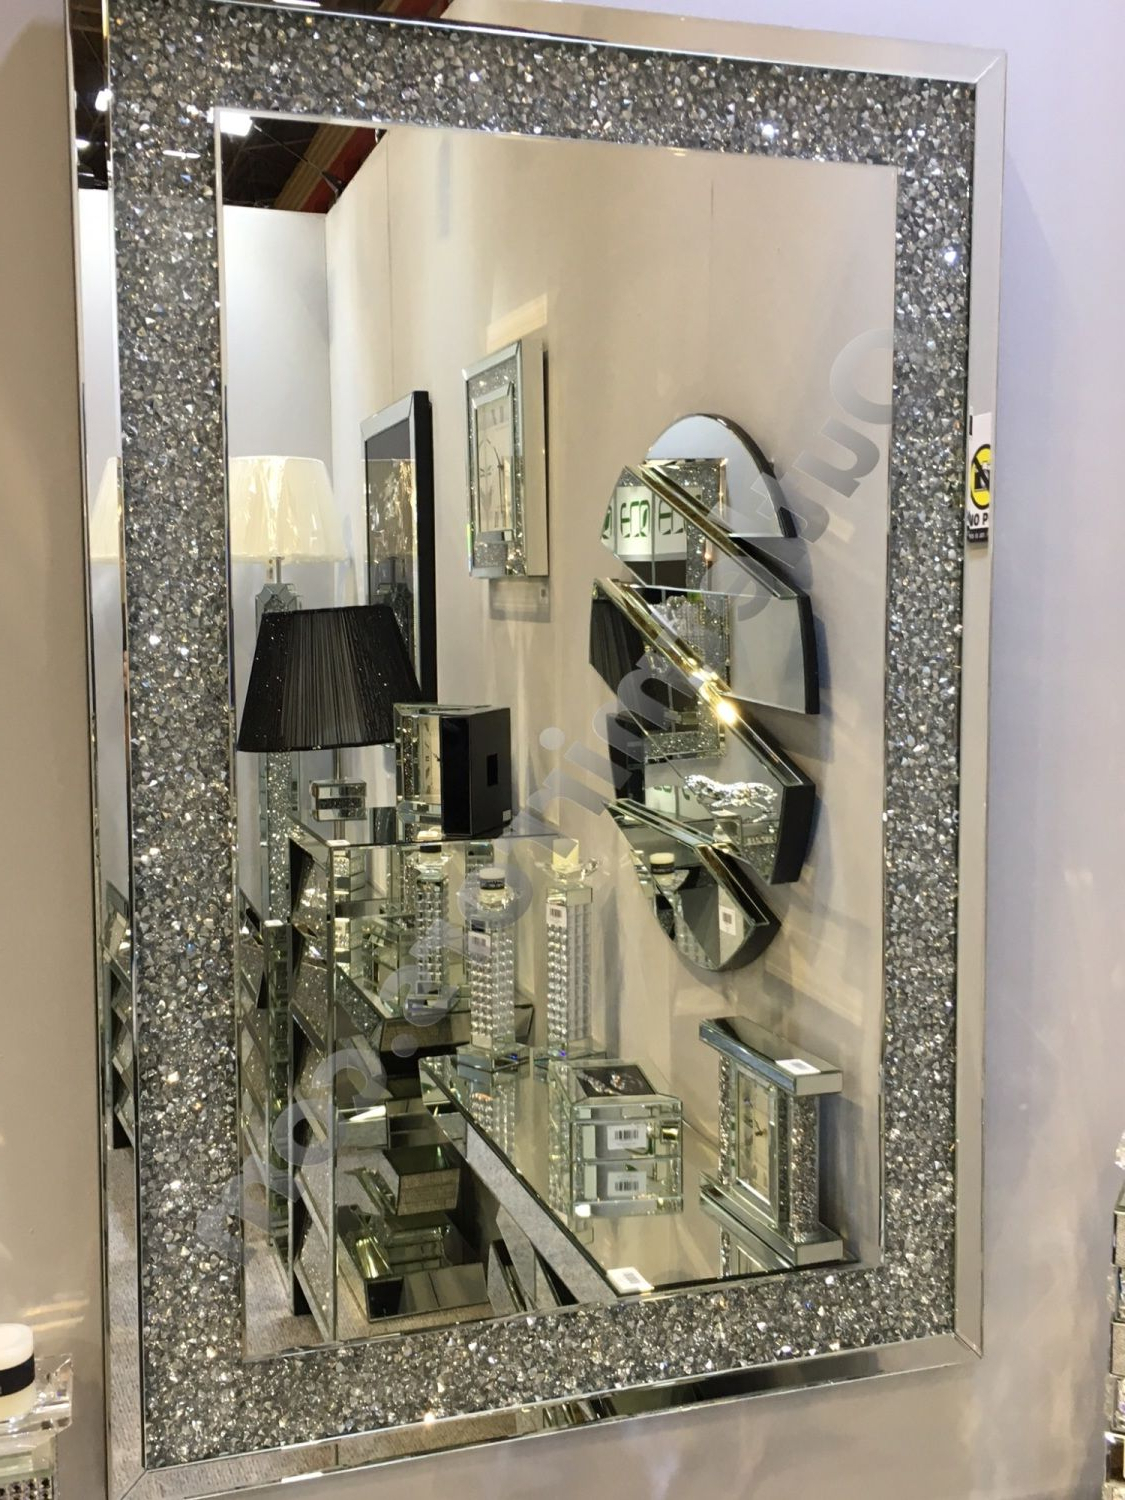 Most Recent Glitter Wall Mirrors Regarding Special Offer* New Diamond Crush Sparkle Wall Mirror 120Cm X (View 1 of 20)